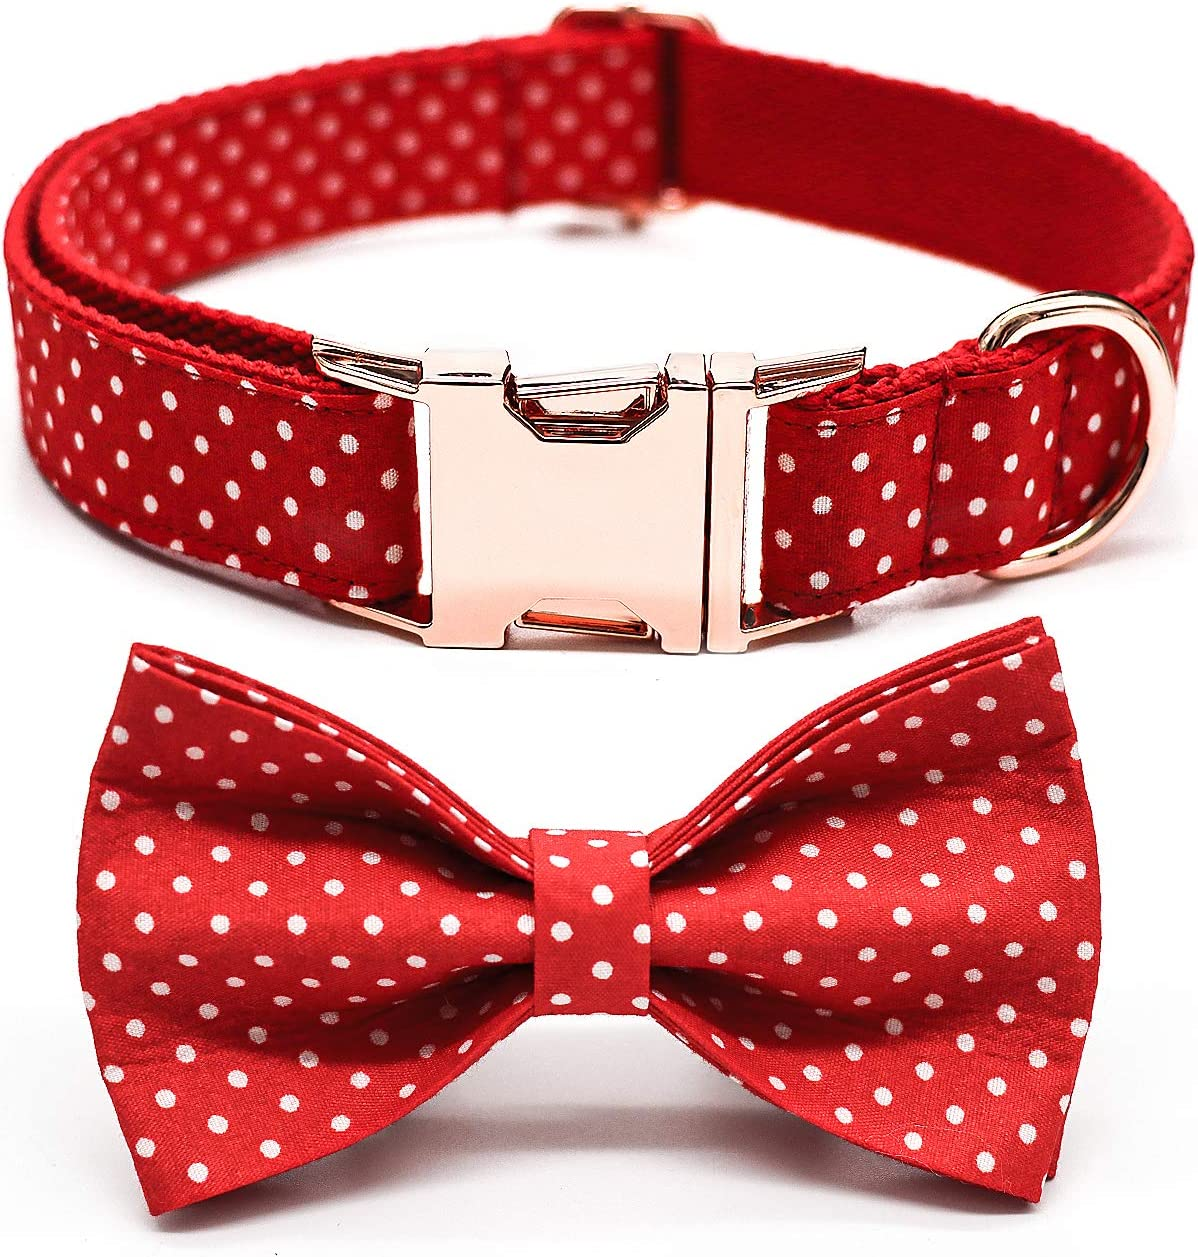 Dog Bowtie Collars Personalized Buckle Day Metal High order Al sold out. Valentine's